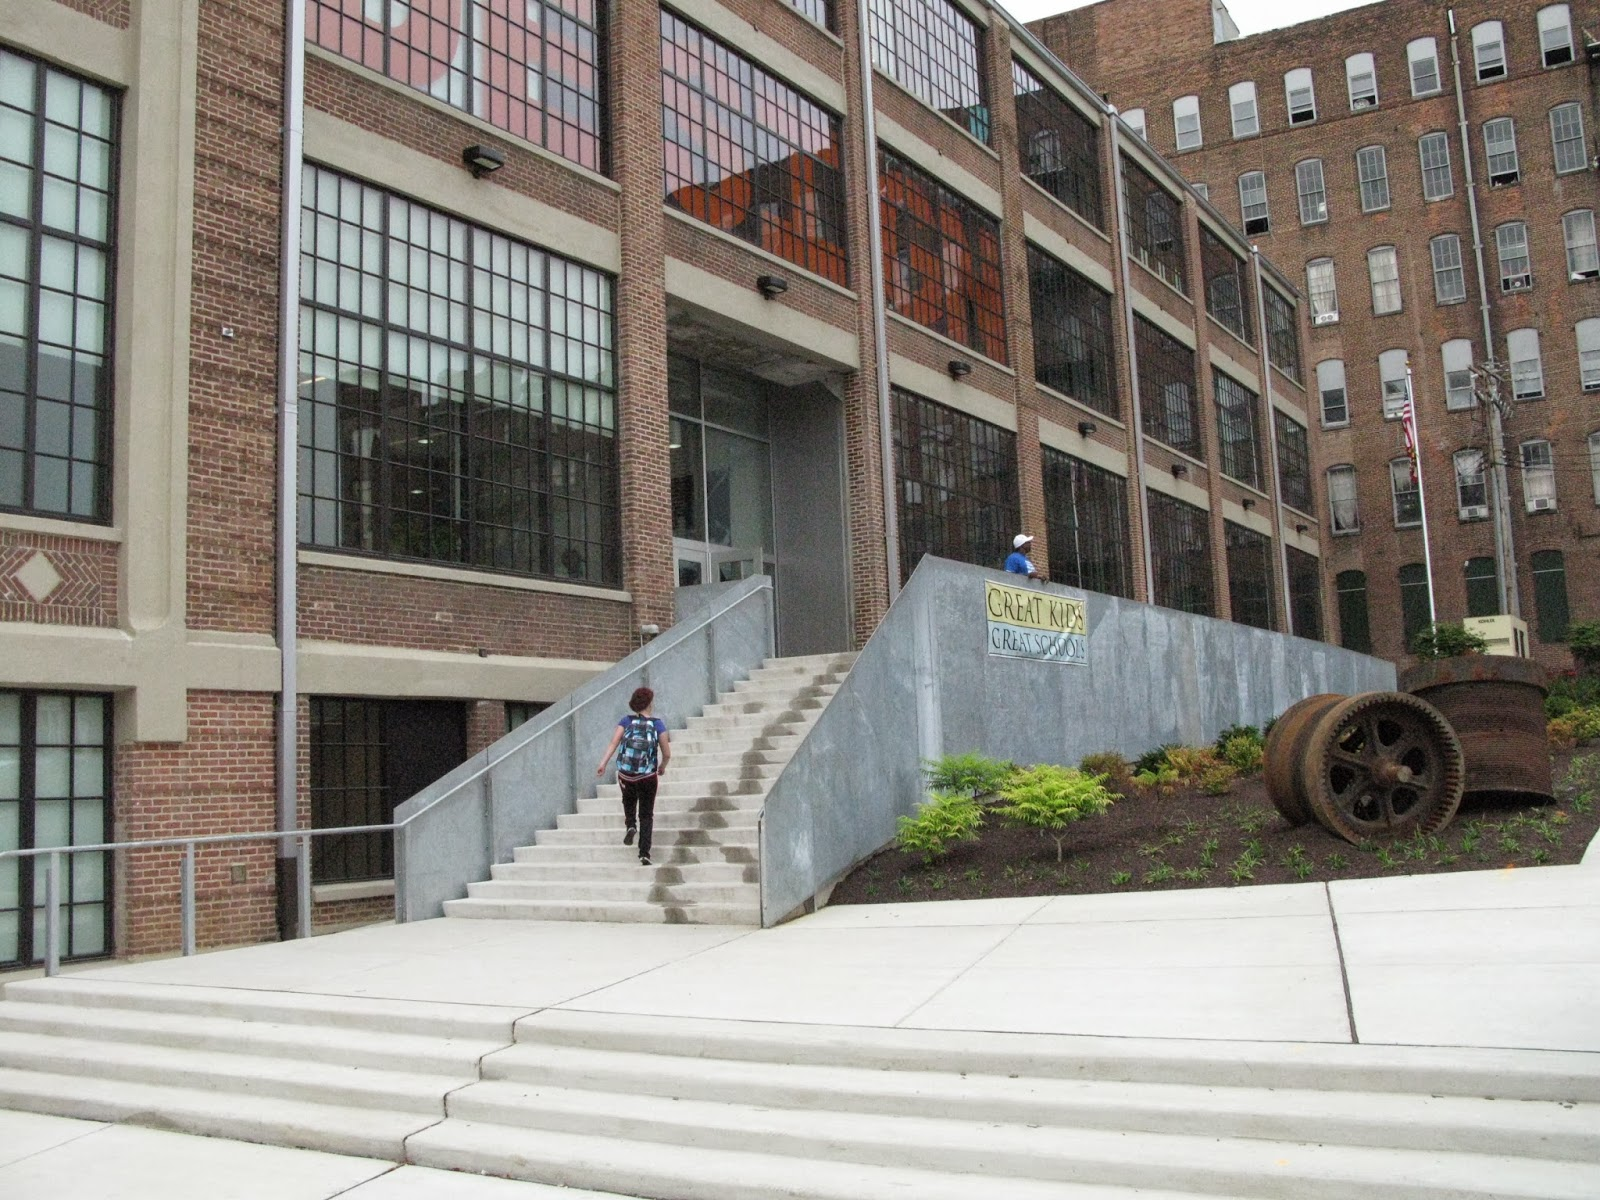 Even Outside Stairs Make A Reearance As Long An Equally Direct Accessible Route Leads To The Same Entrance Design School Baltimore Architect Ziger